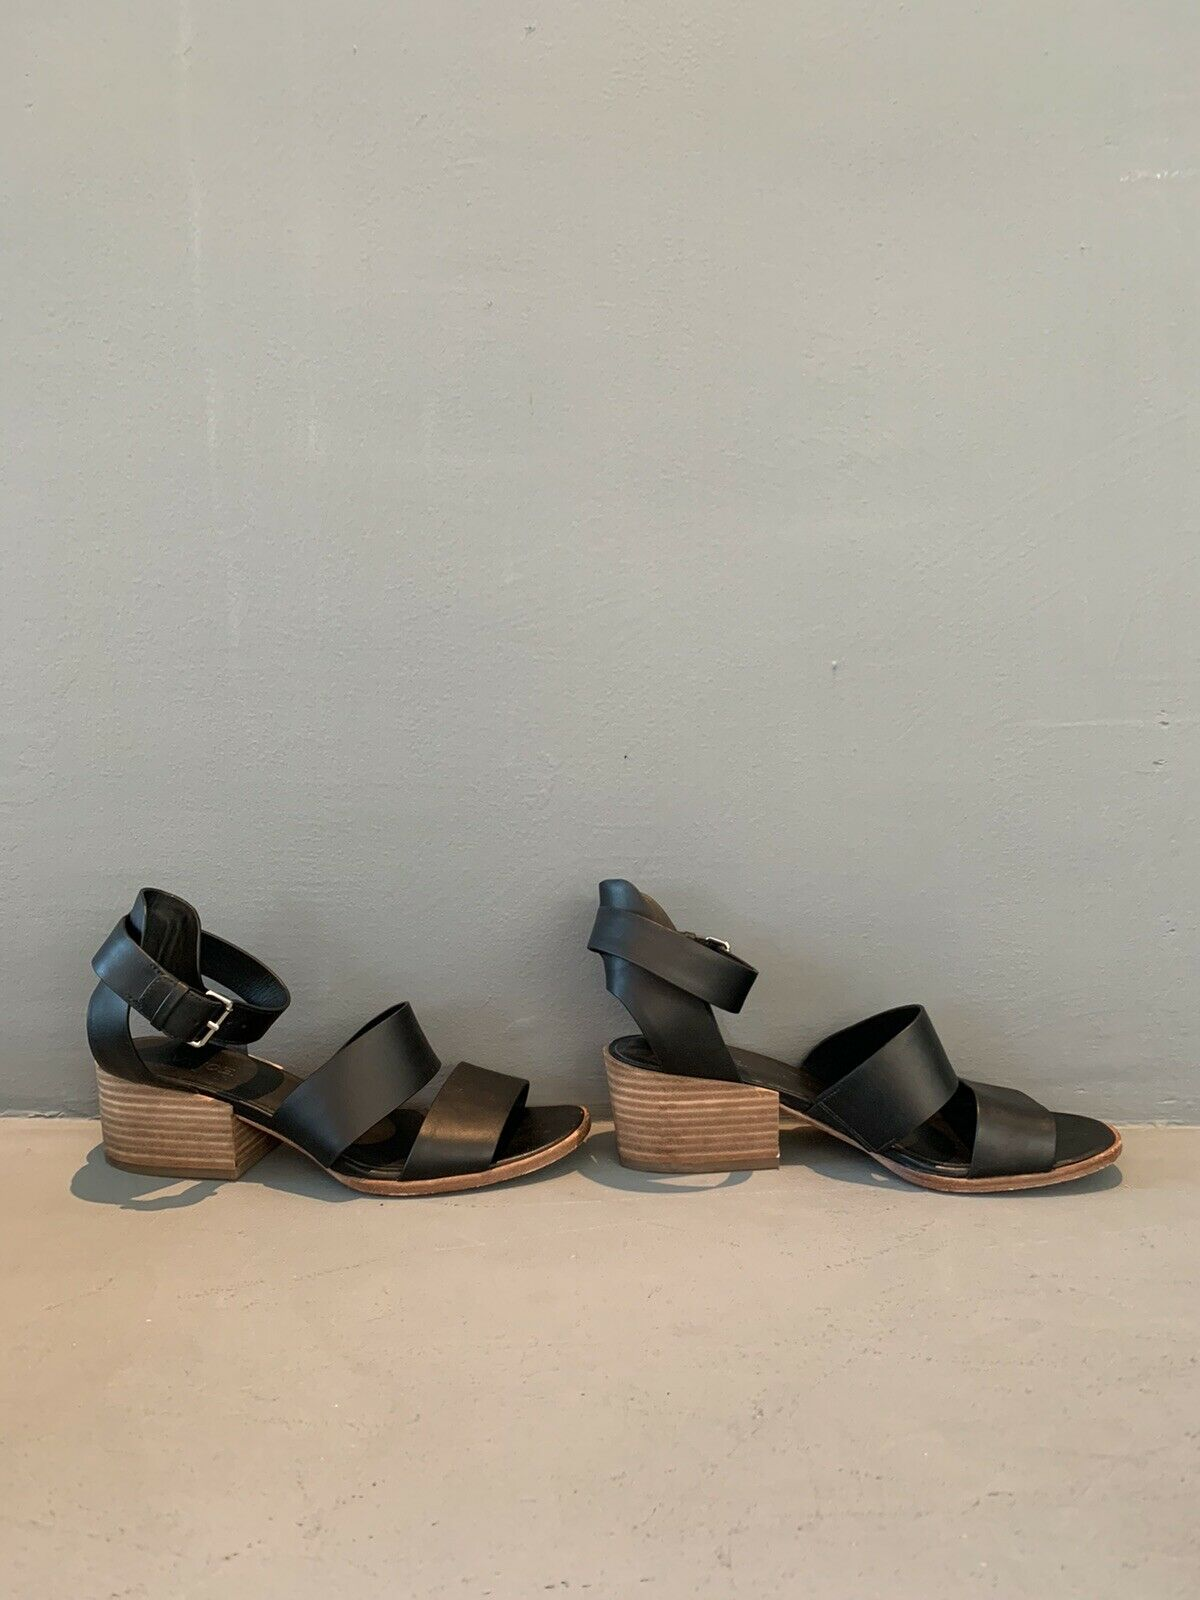 Vince Strappy Sandals - image 6